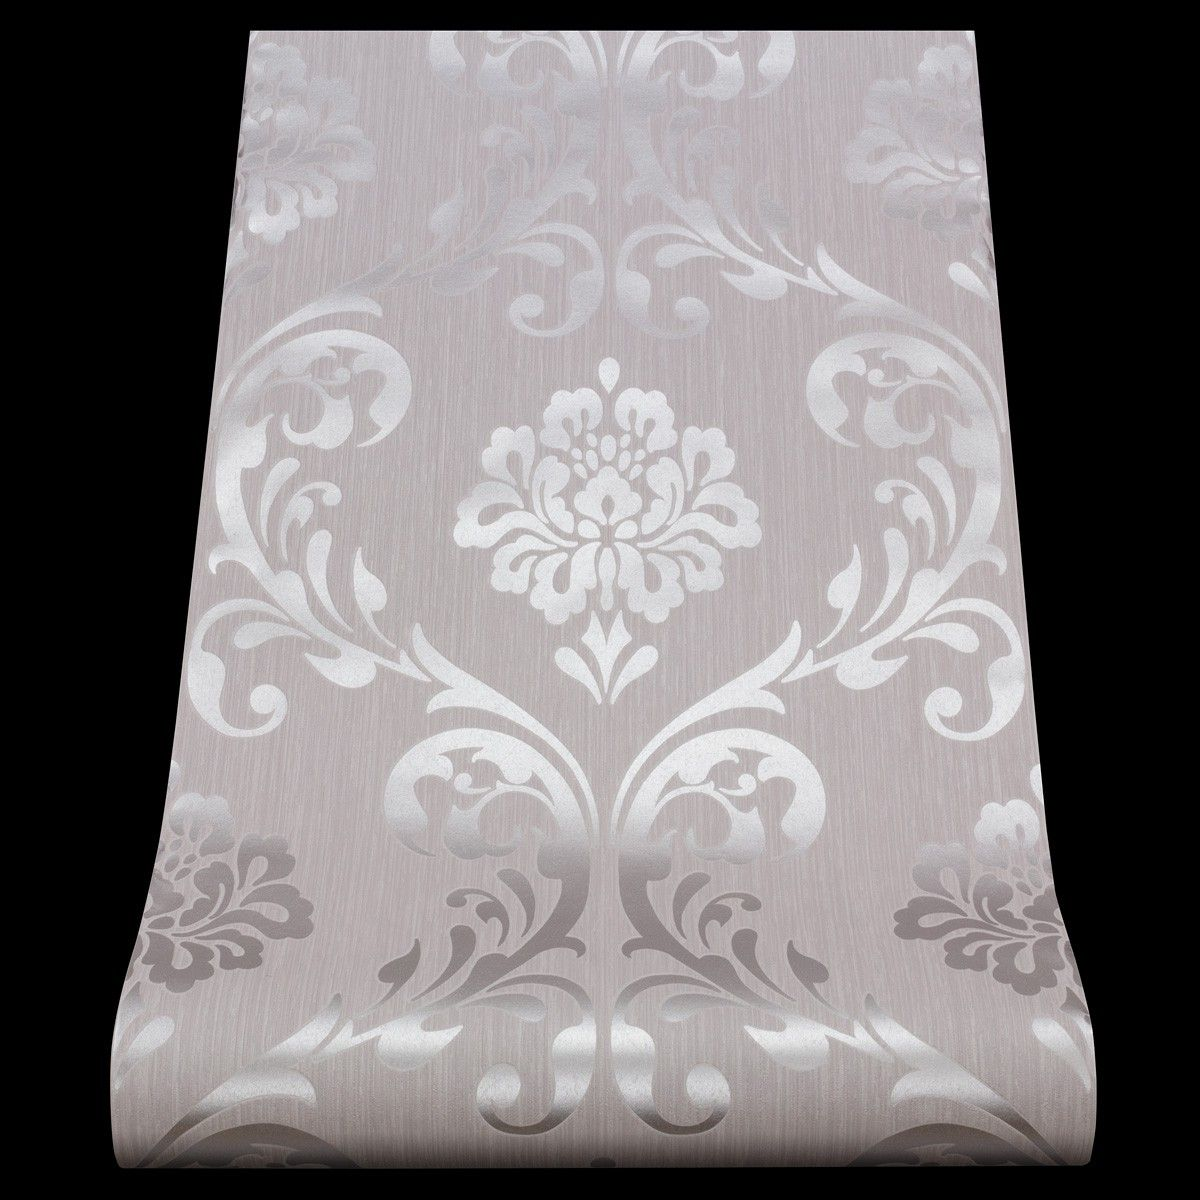 Schon Glitzer Tapeten Silber Wall Wallpaper Damask Wallpaper Decor